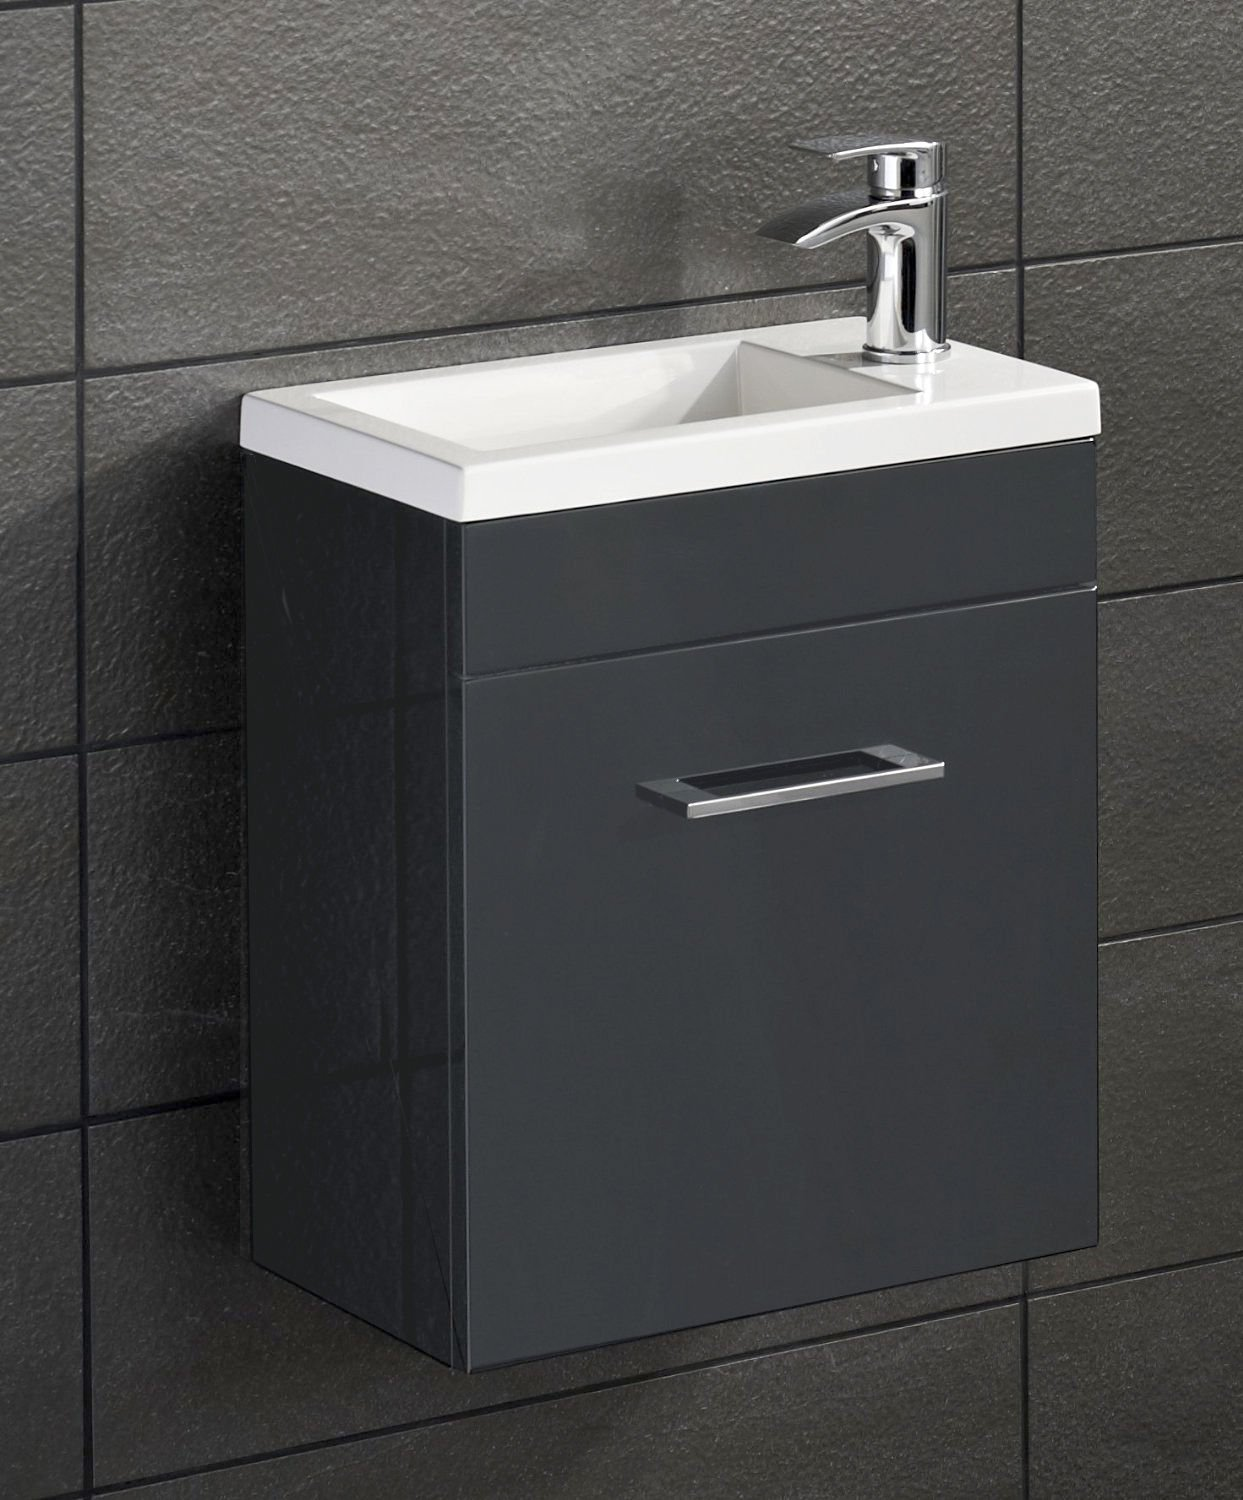 Square sink vanity unit marvelous bathroom design with for Vanity sink units bathroom sale